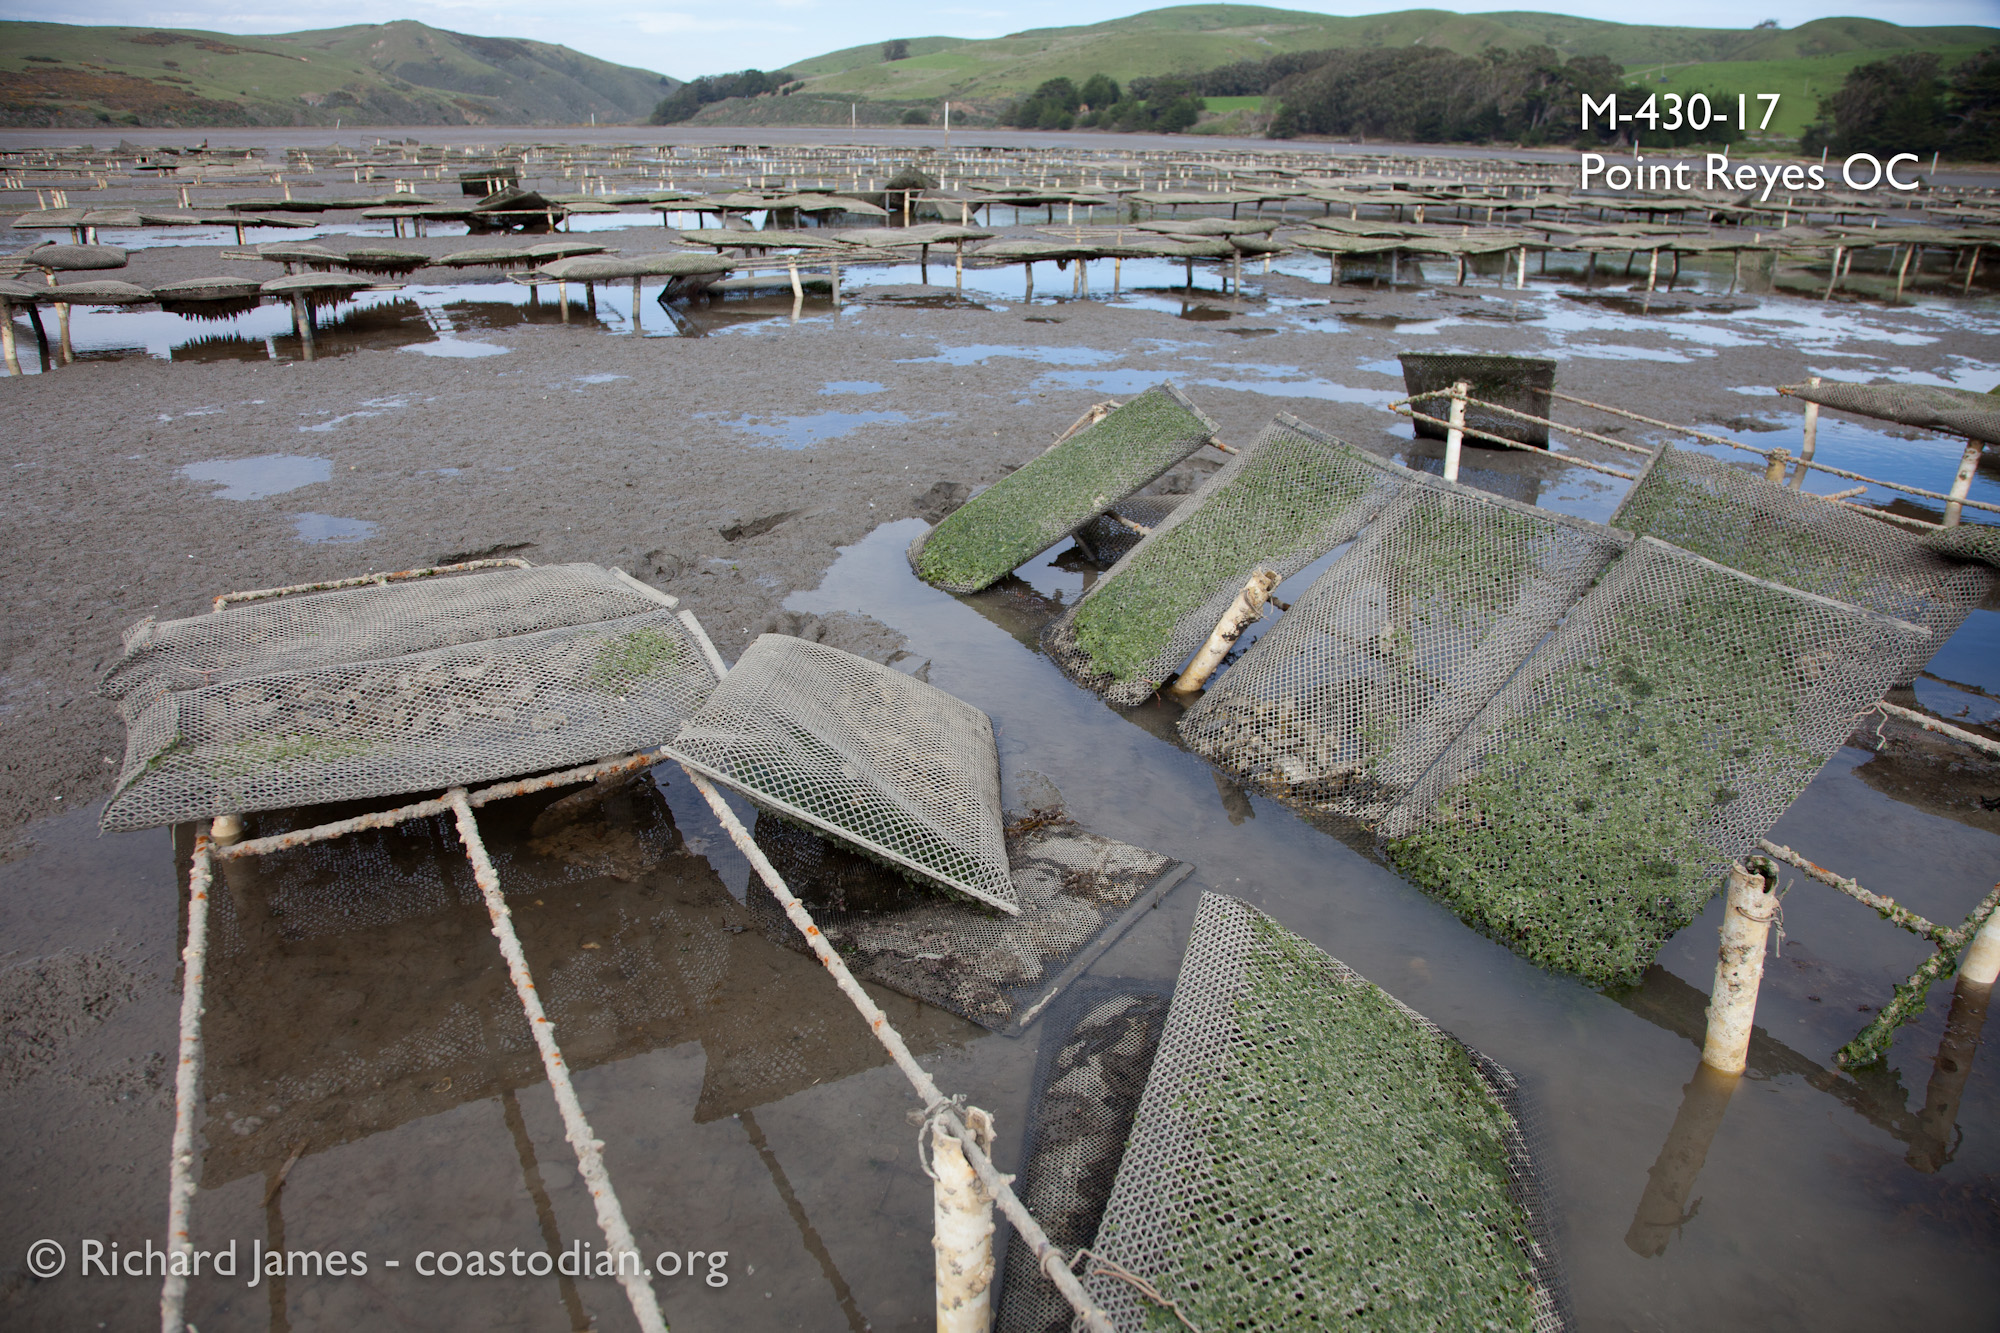 Grow-out bags laying in the mud, racks in a state of disrepair on lease M-430-17, run by Point Reyes Oyster Company.